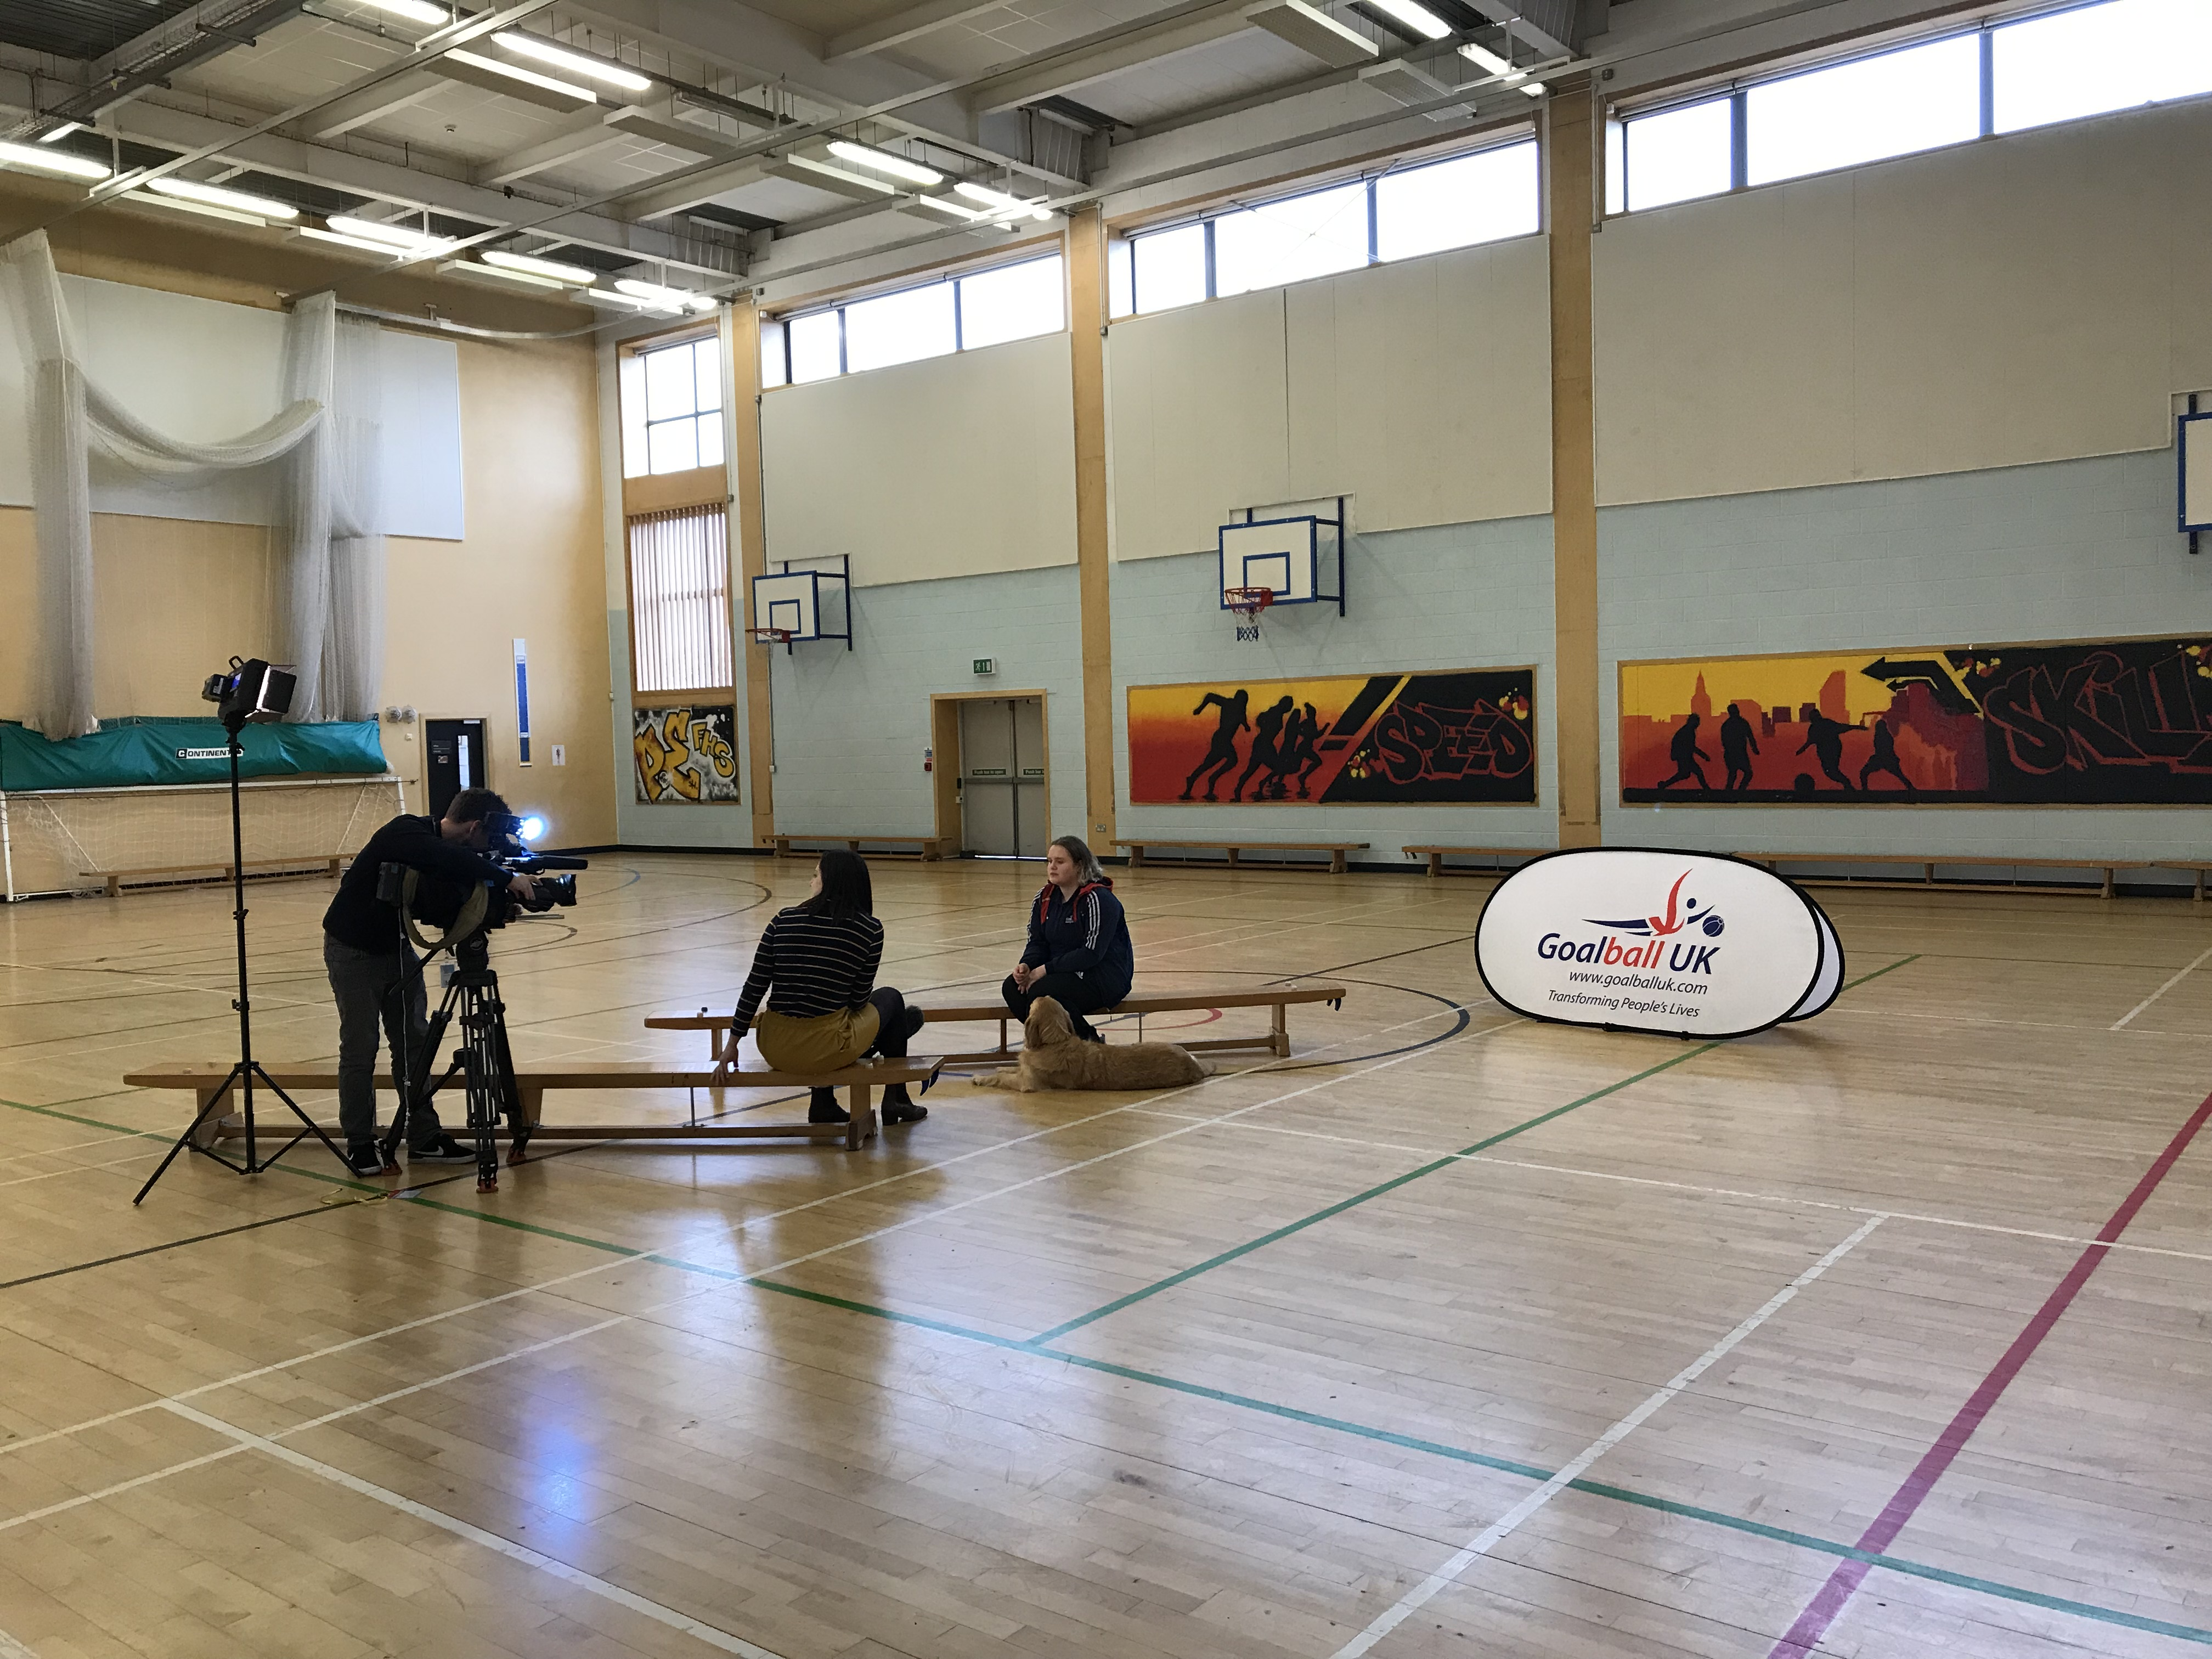 GB player talking to ITV after a school festival in Bristol